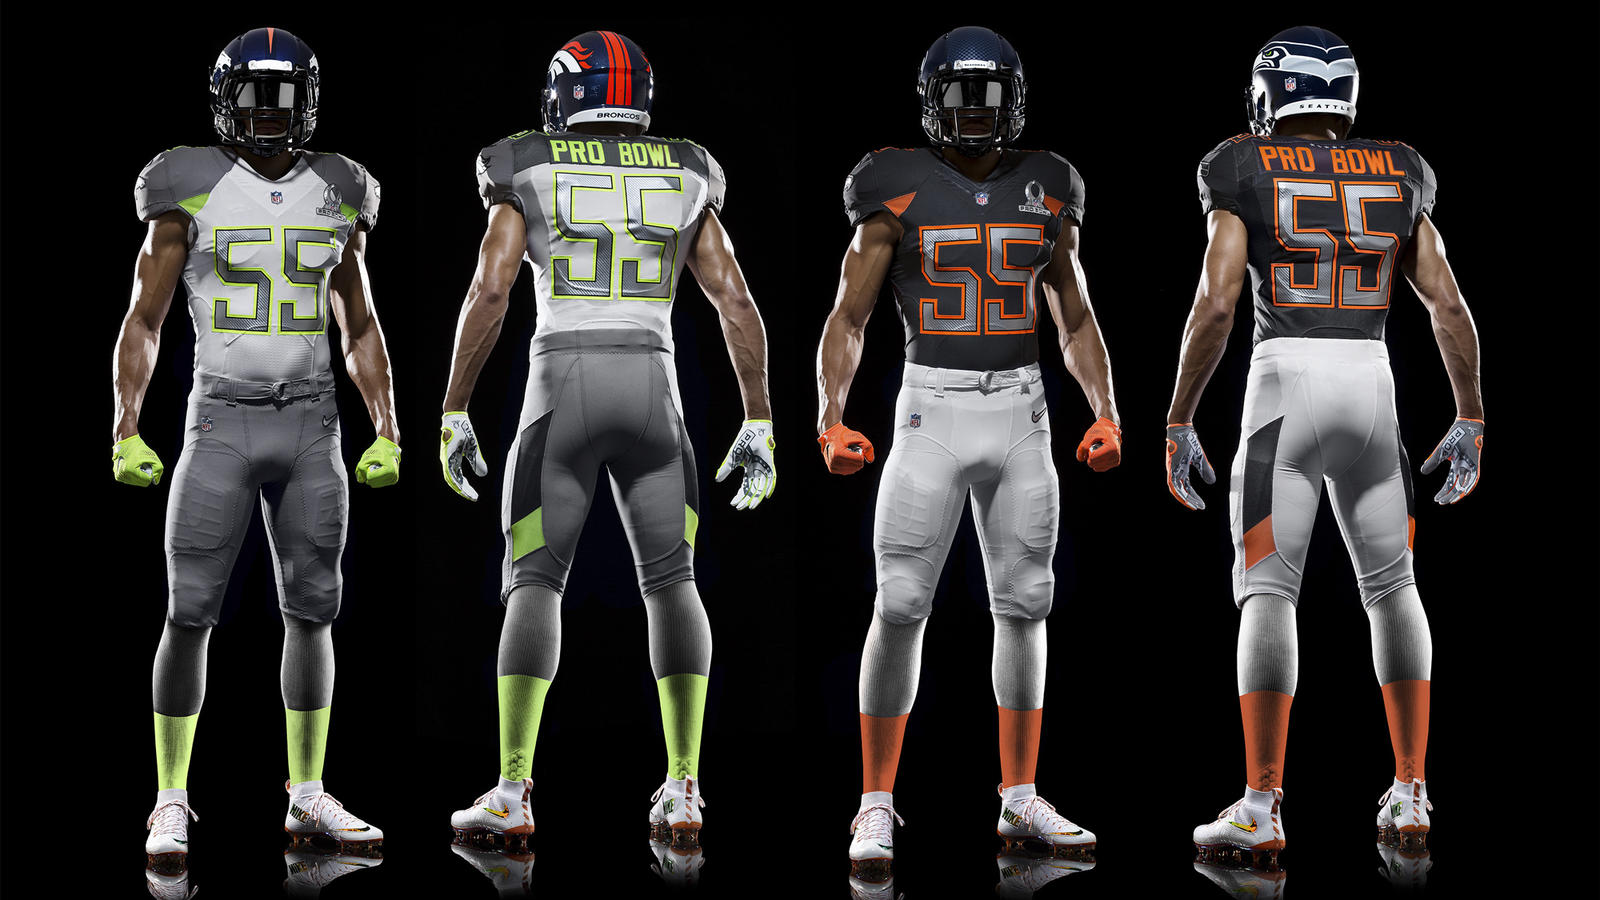 best service 2ea7e 45d8f Nike NFL Pro Bowl Uniforms Bring Fantasy Football Format to ...